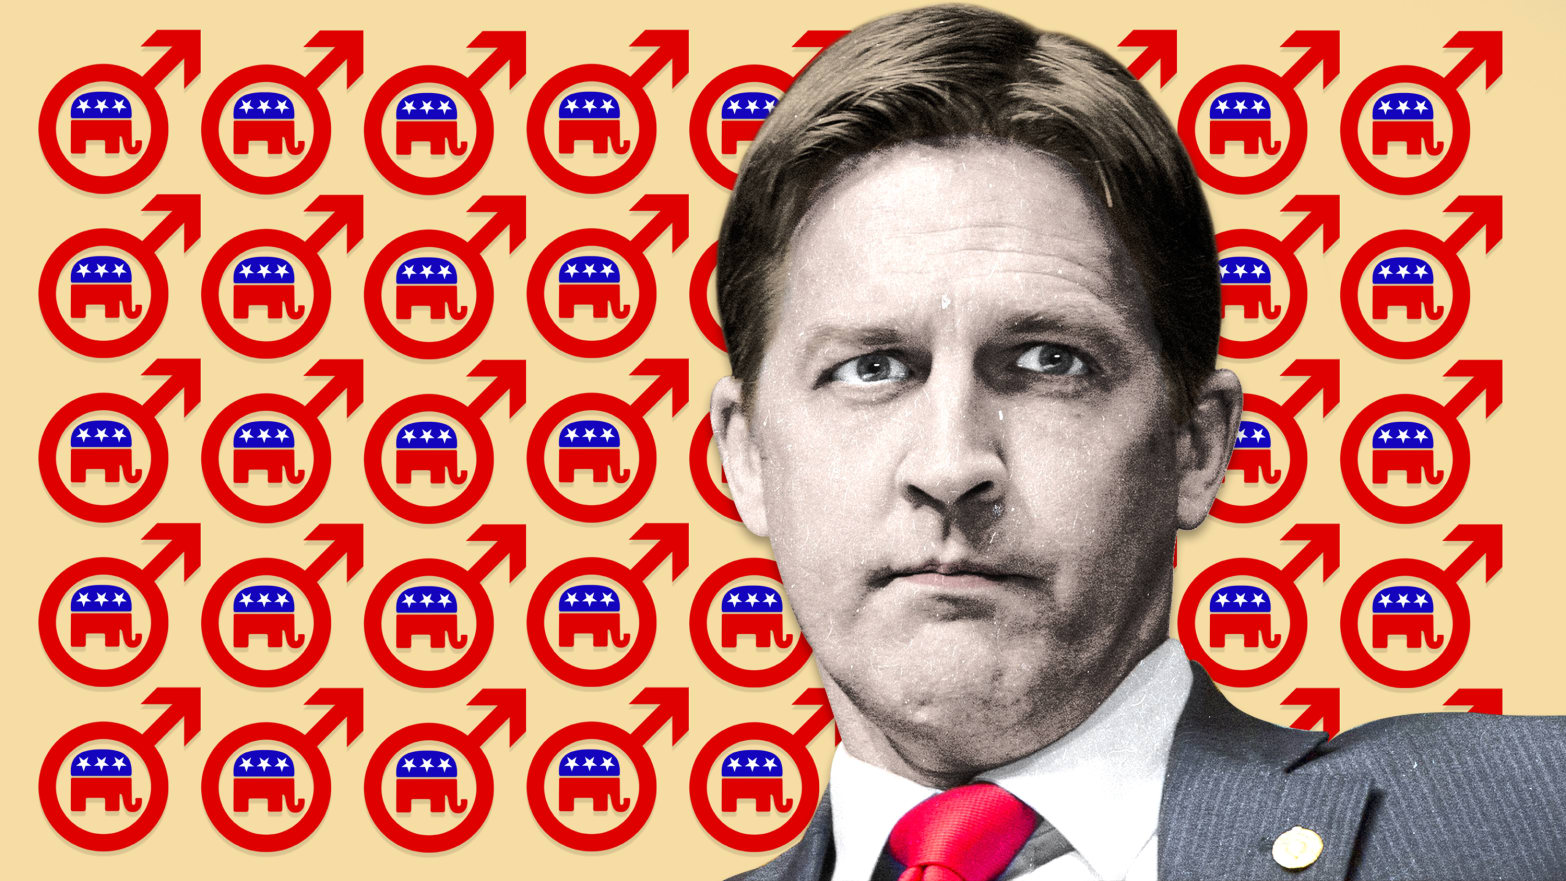 Ben Sasse Became the One Thing a Trump-Era Pol Should Never Be: Weak